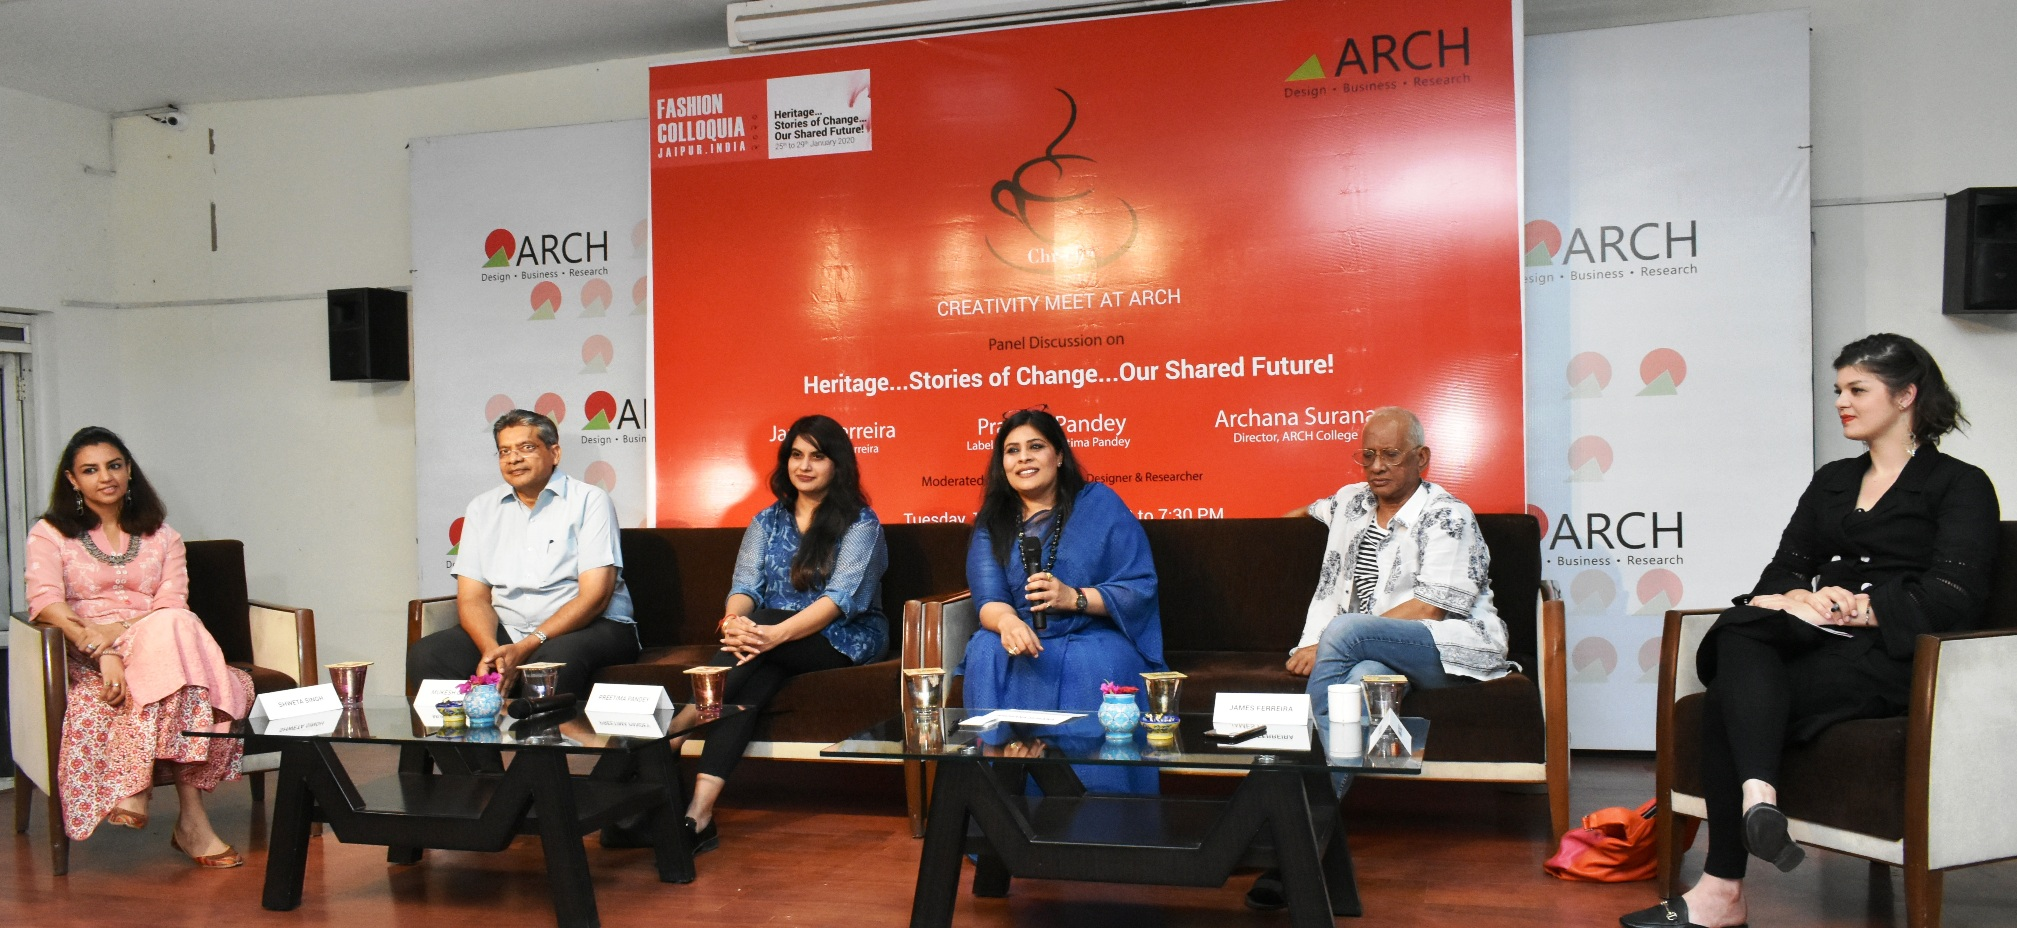 Chrcha On Heritage Stories Of Change Our Shared Future Arch College Of Design Business